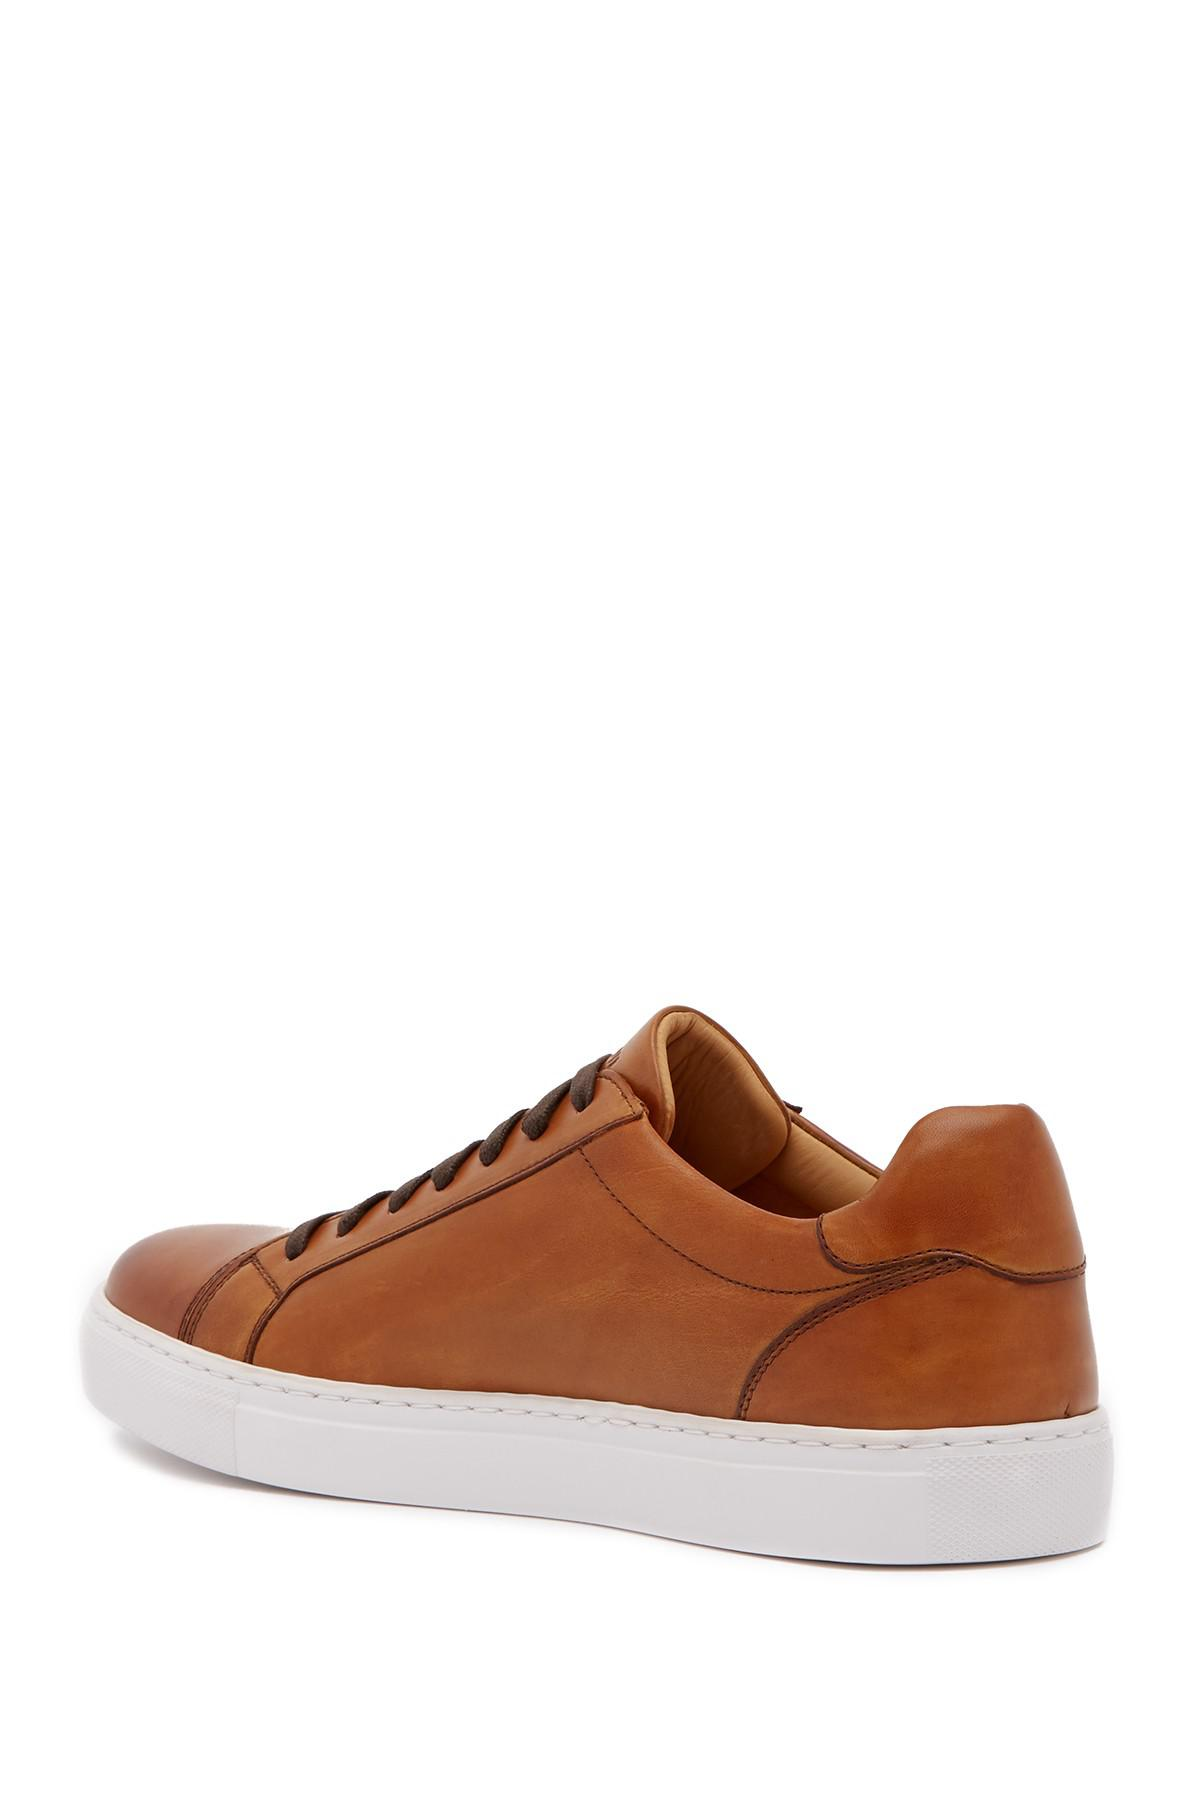 b4107fbe Magnanni Cuervo Leather Sneaker in Brown for Men - Lyst